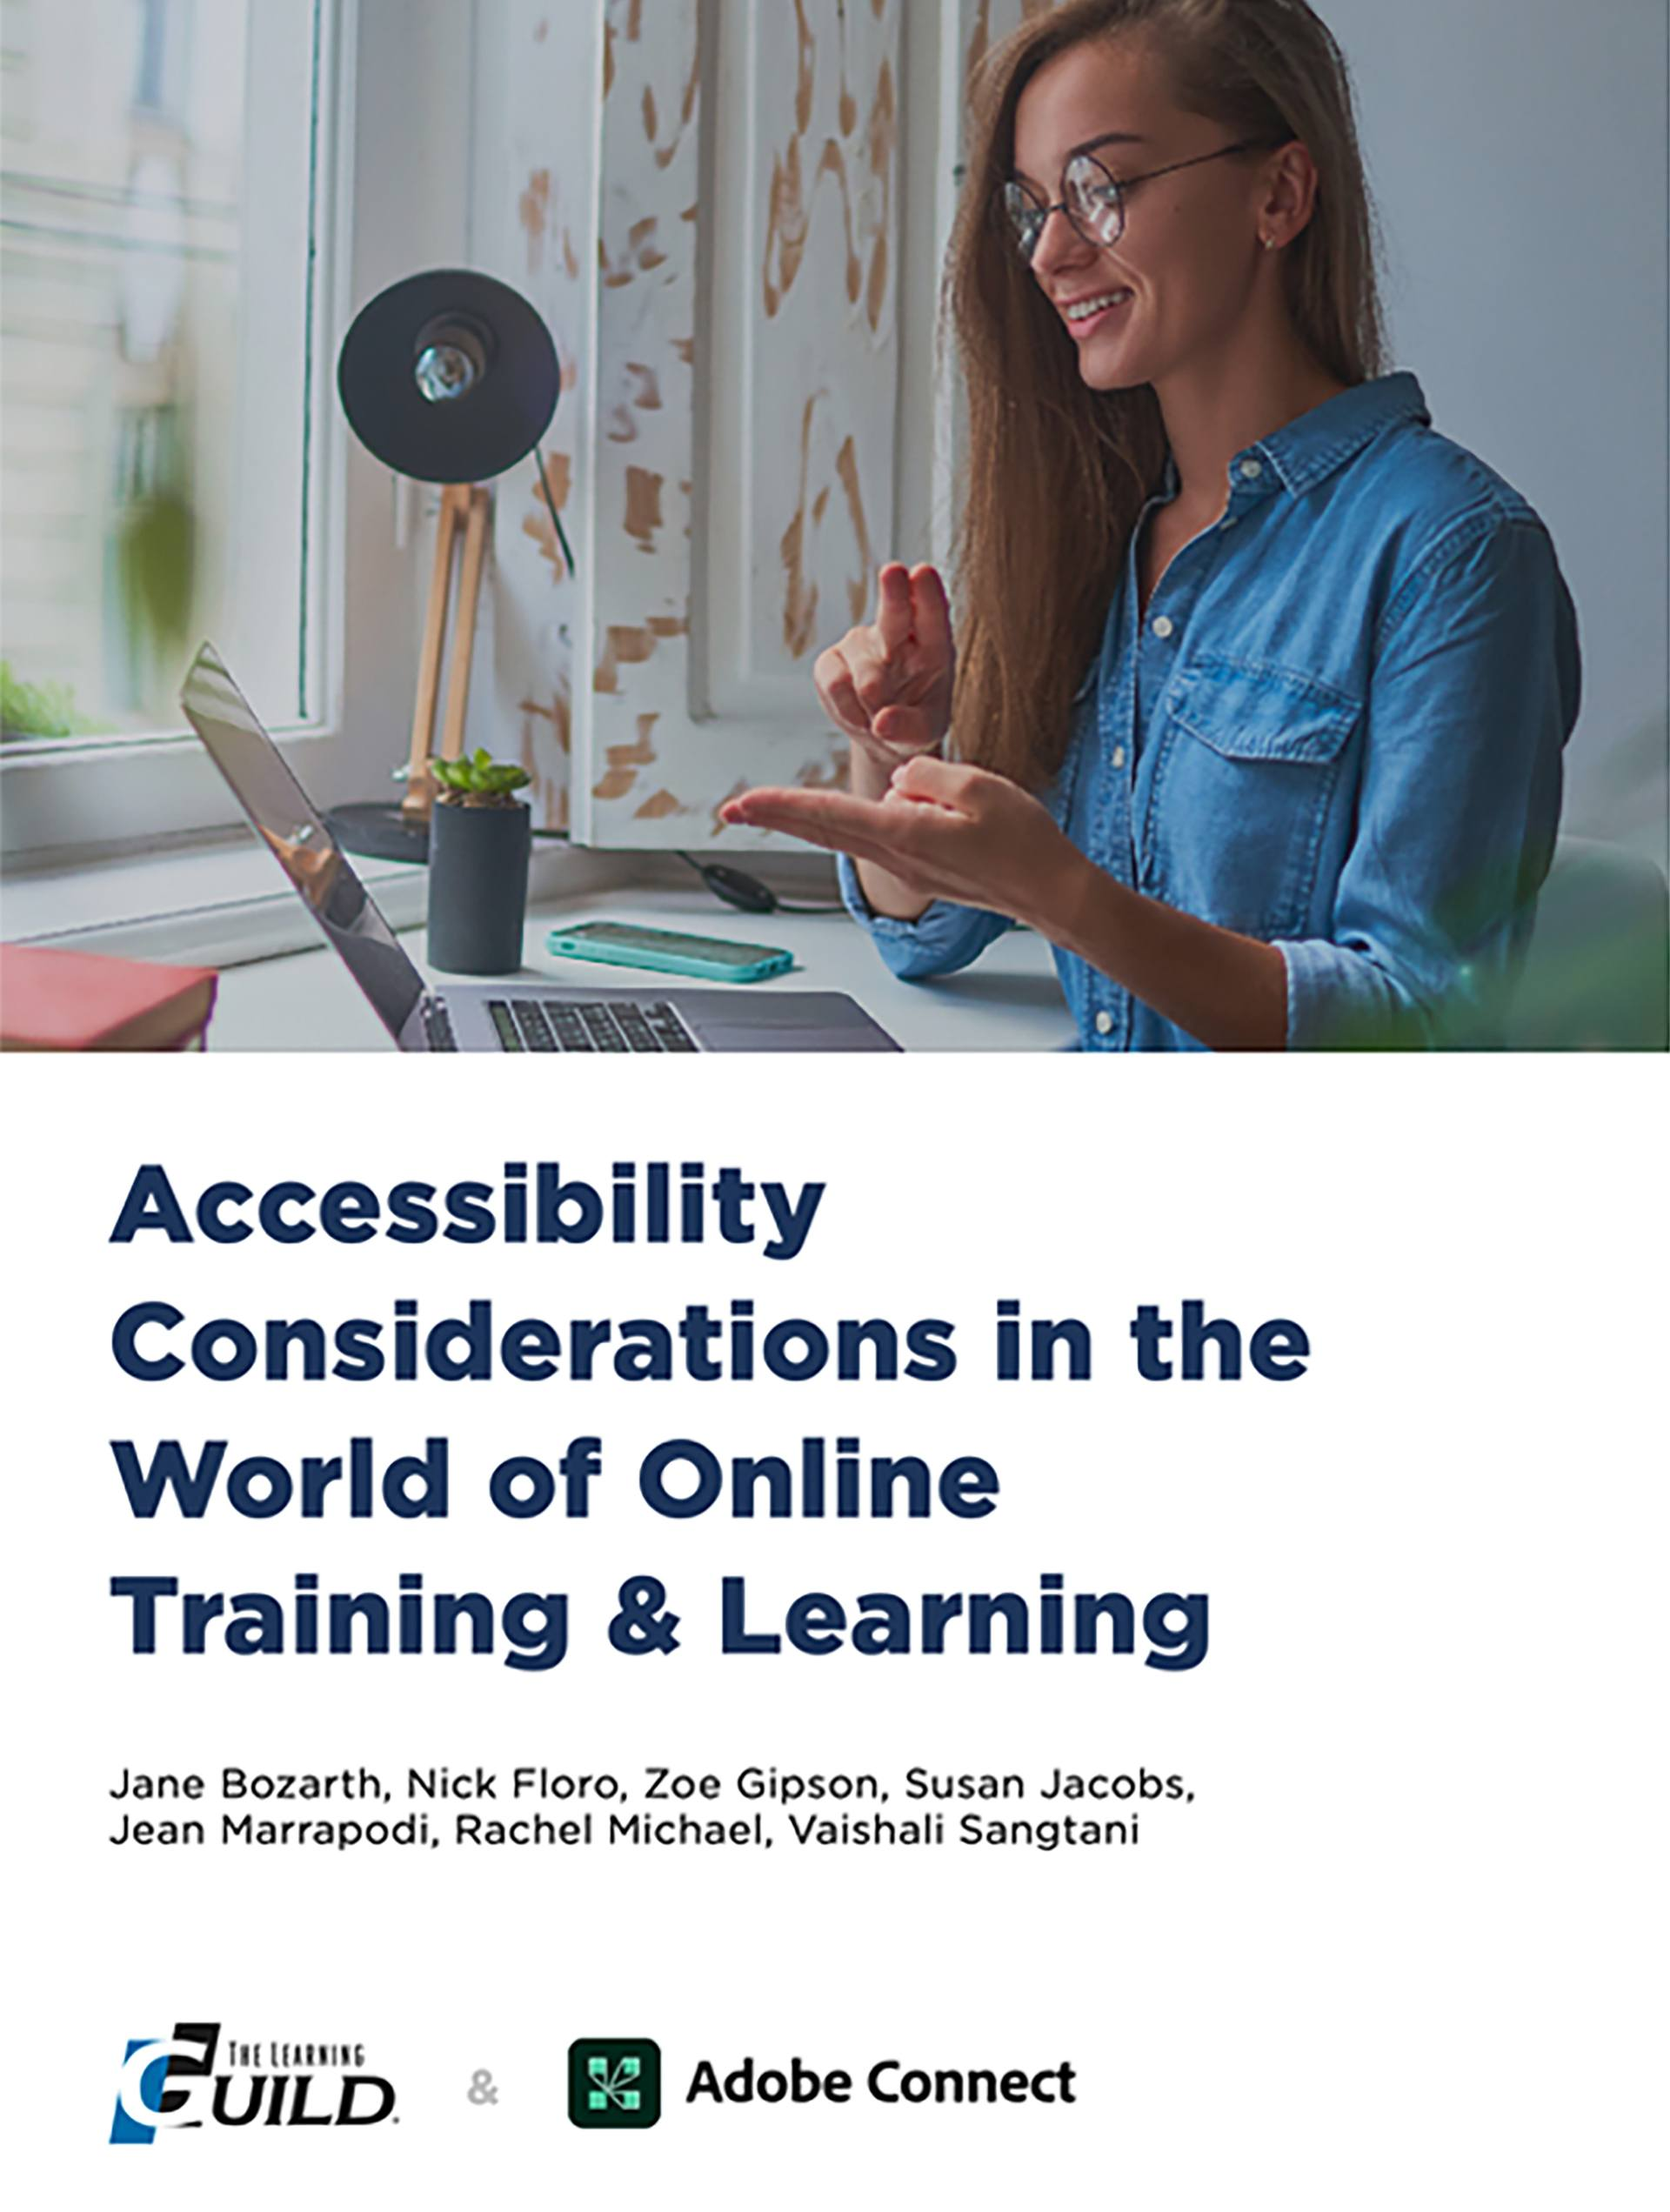 Accessibility Considerations In The World Of Online Training And Learning